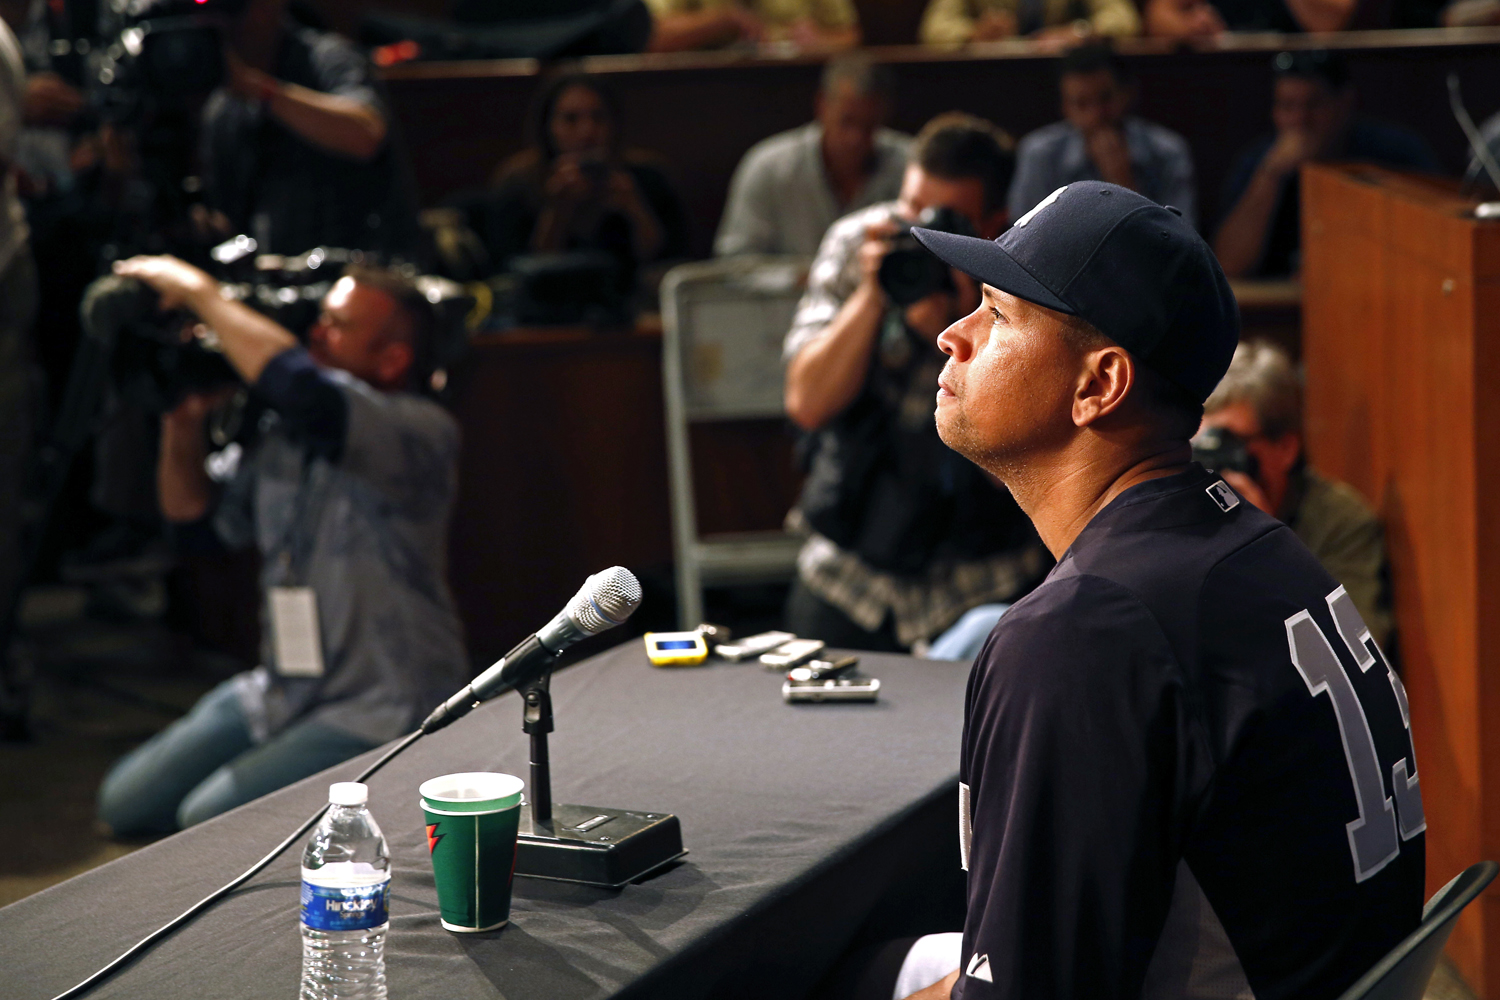 Aug. 5, 2013. New York Yankees' Alex Rodriguez has a news conference before the Yankees play the Chicago White Sox in a baseball game at U.S. Cellular Field in Chicago.